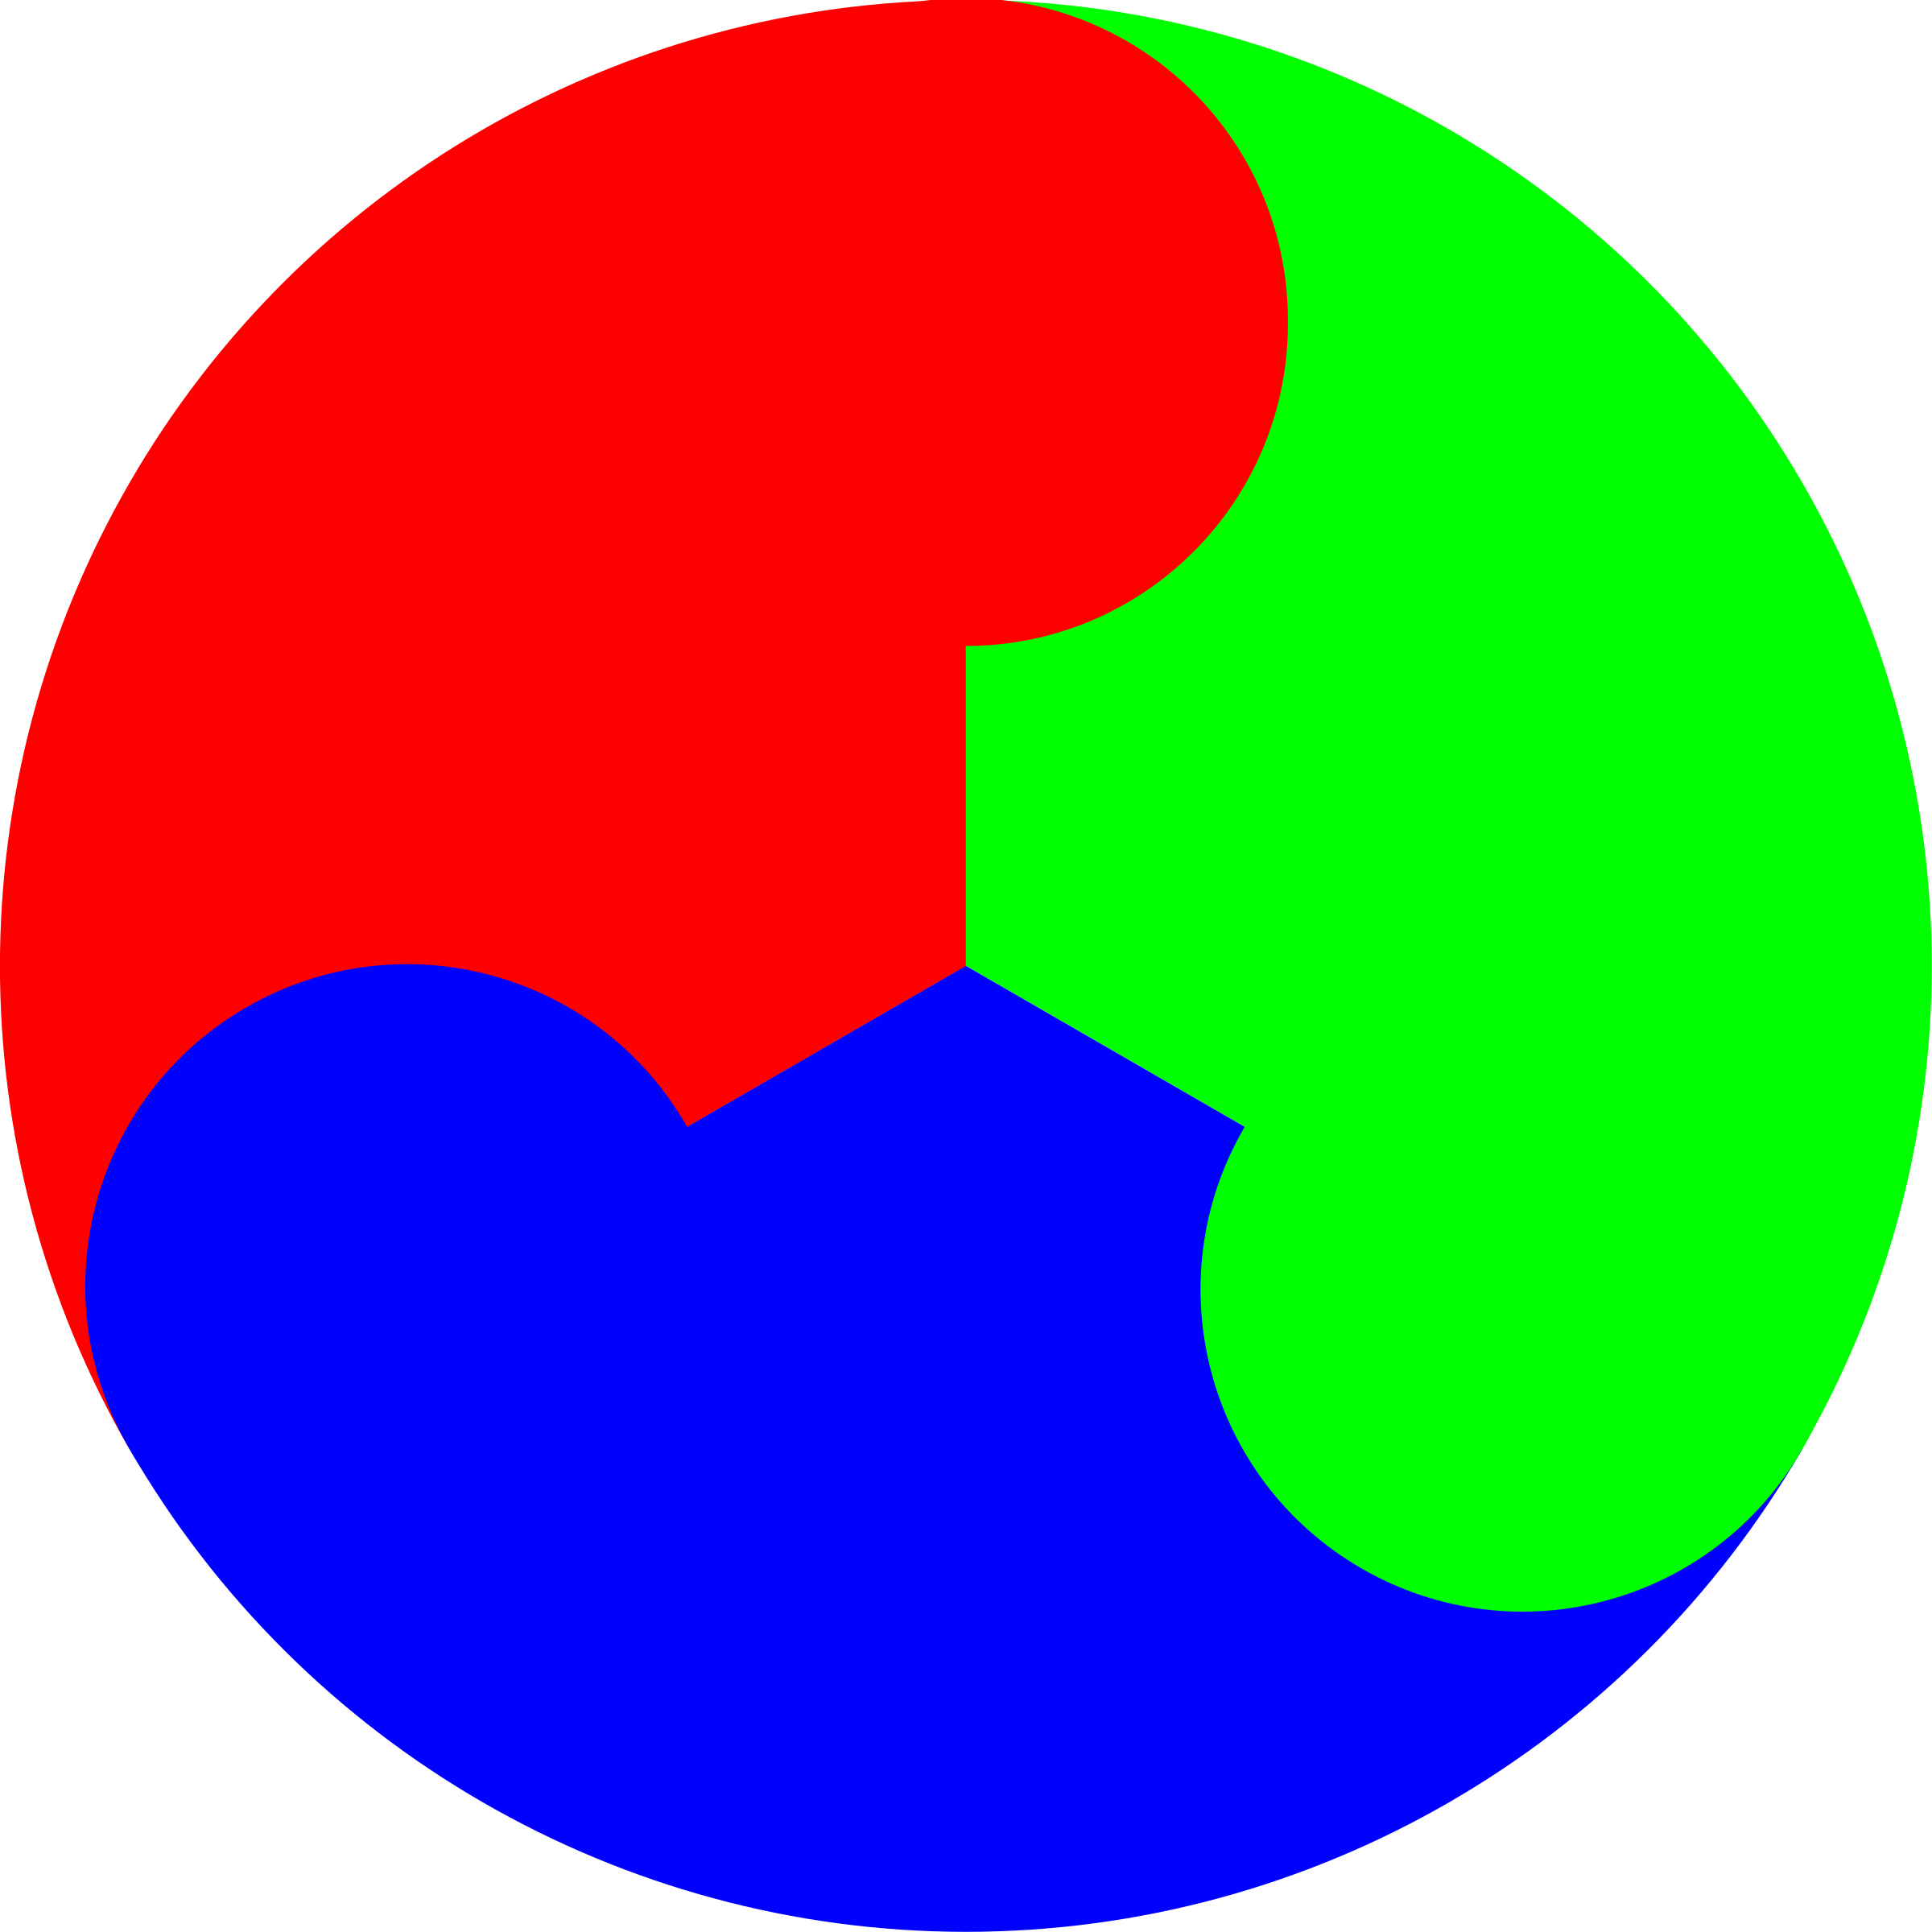 3 color yinyang by 10binary